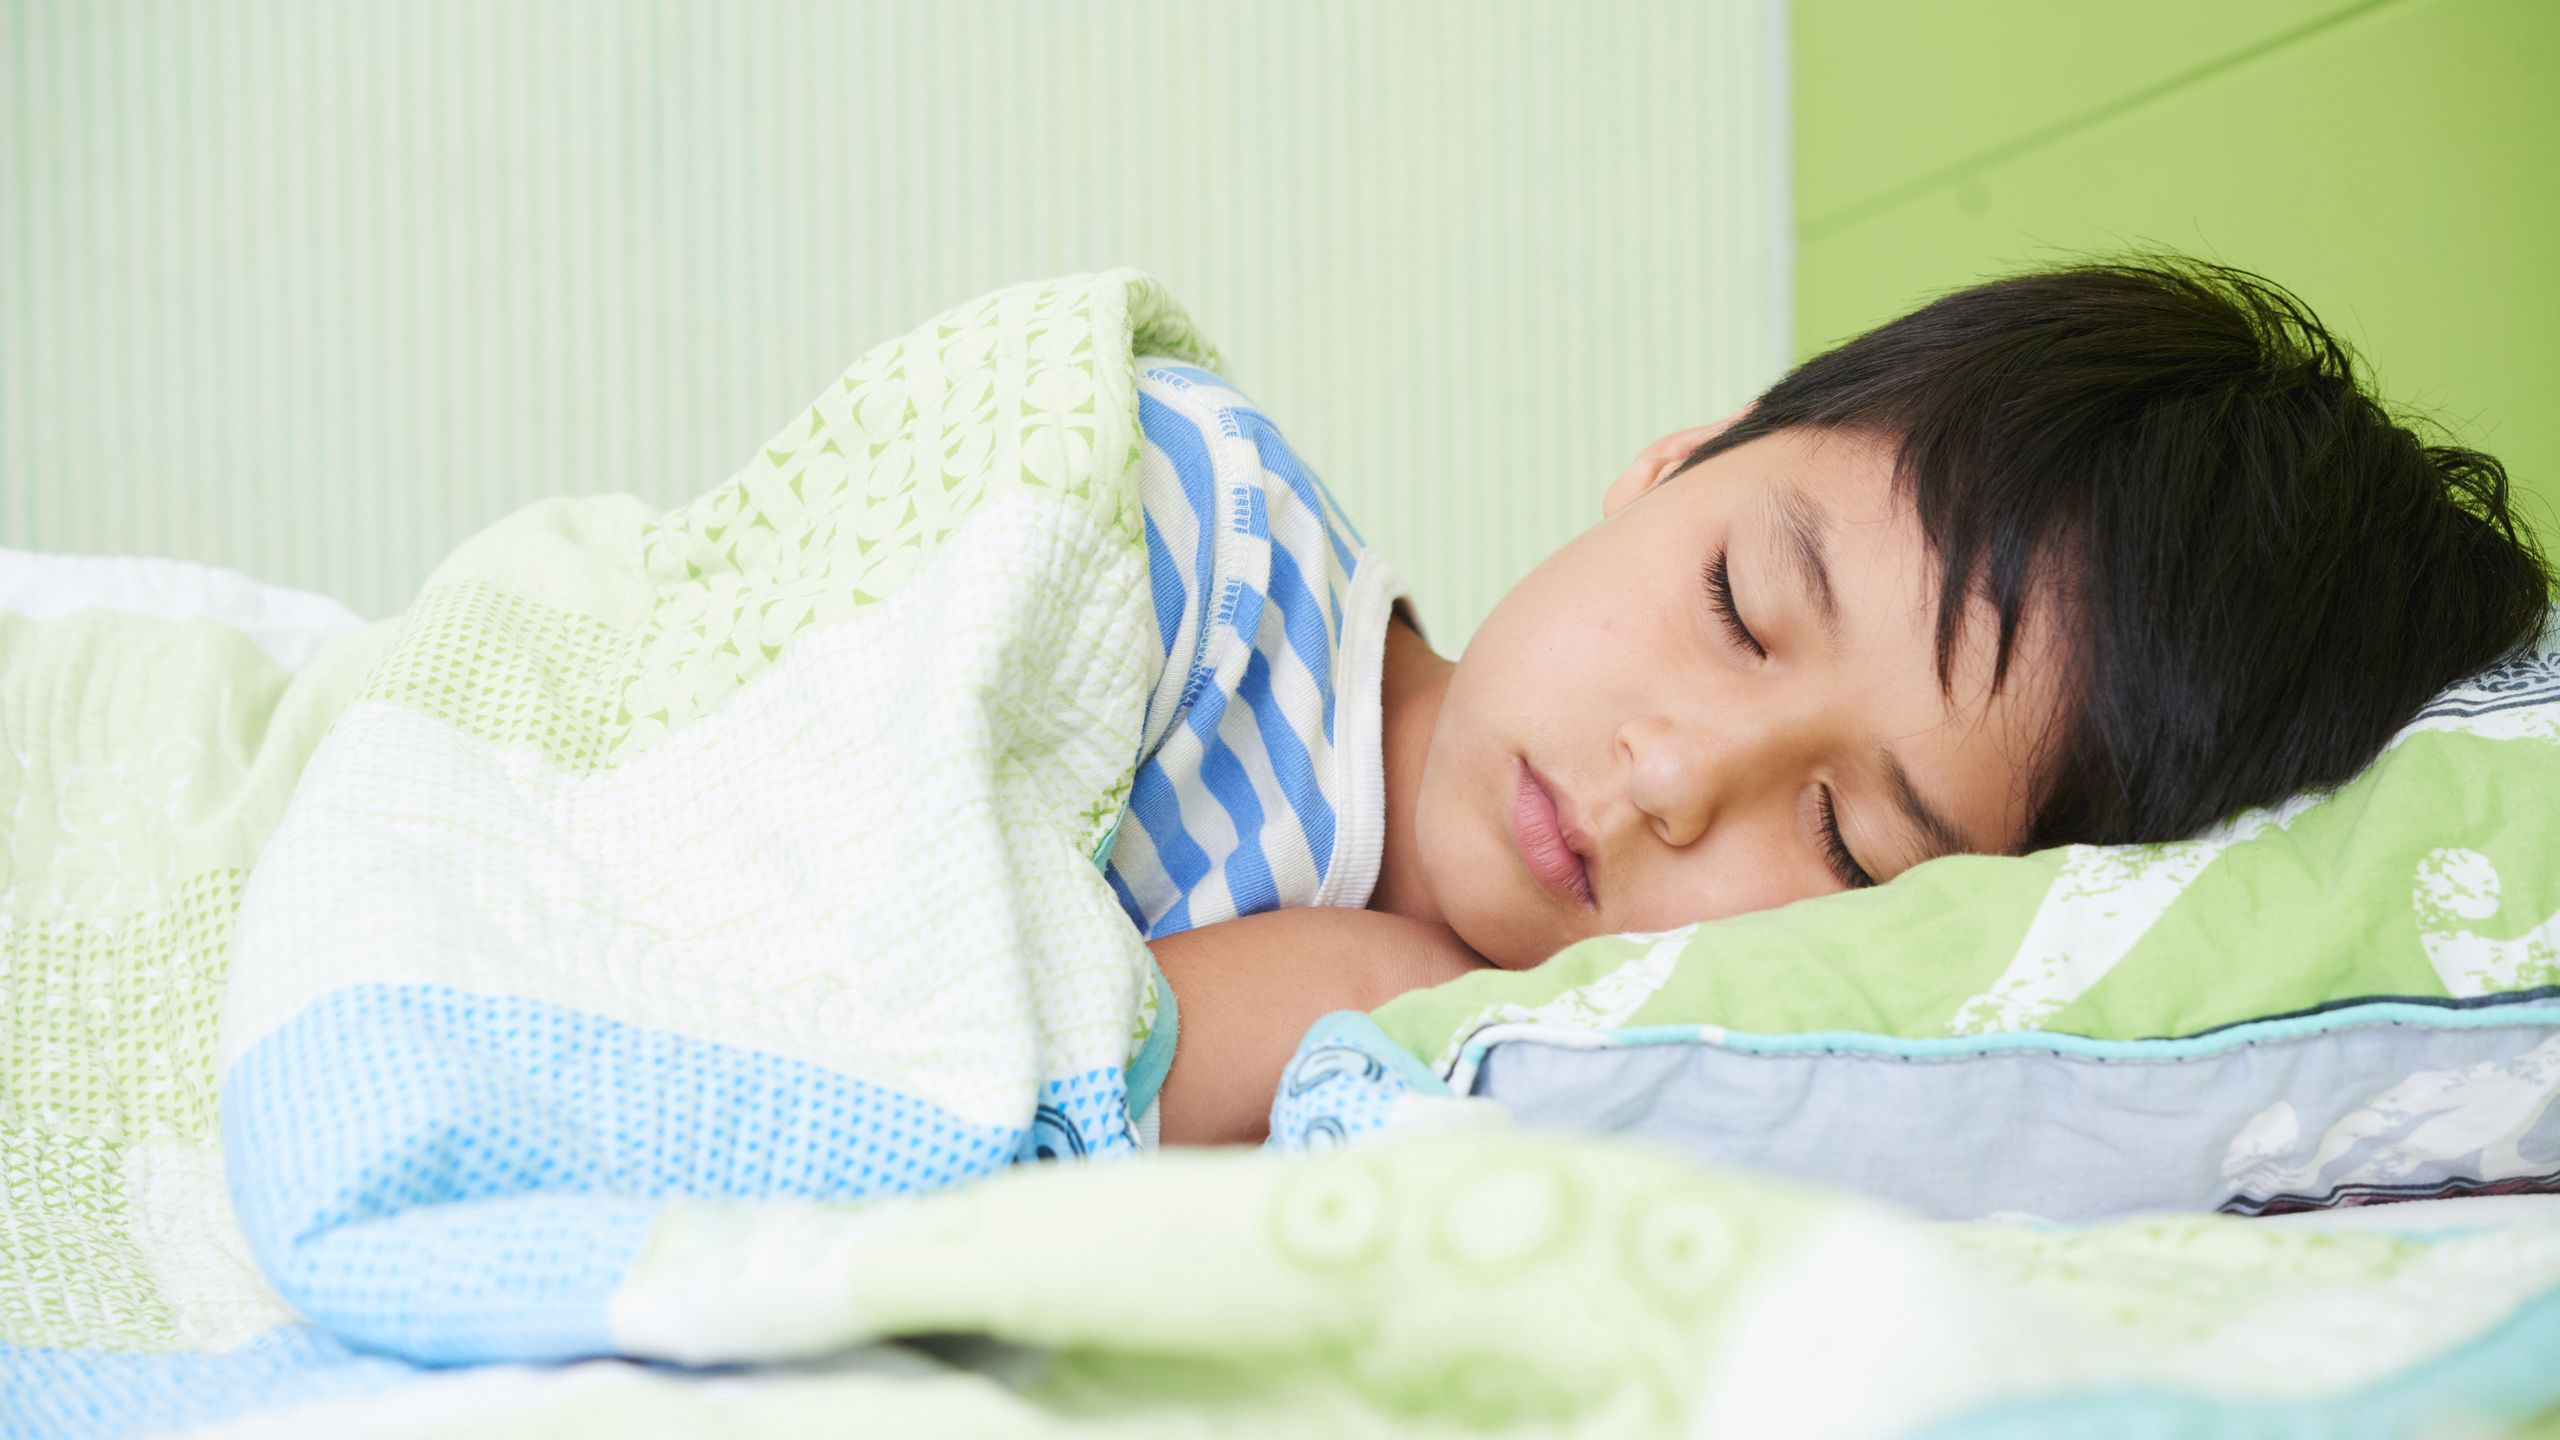 pics Constipation May Help Explain Some Bedwetting